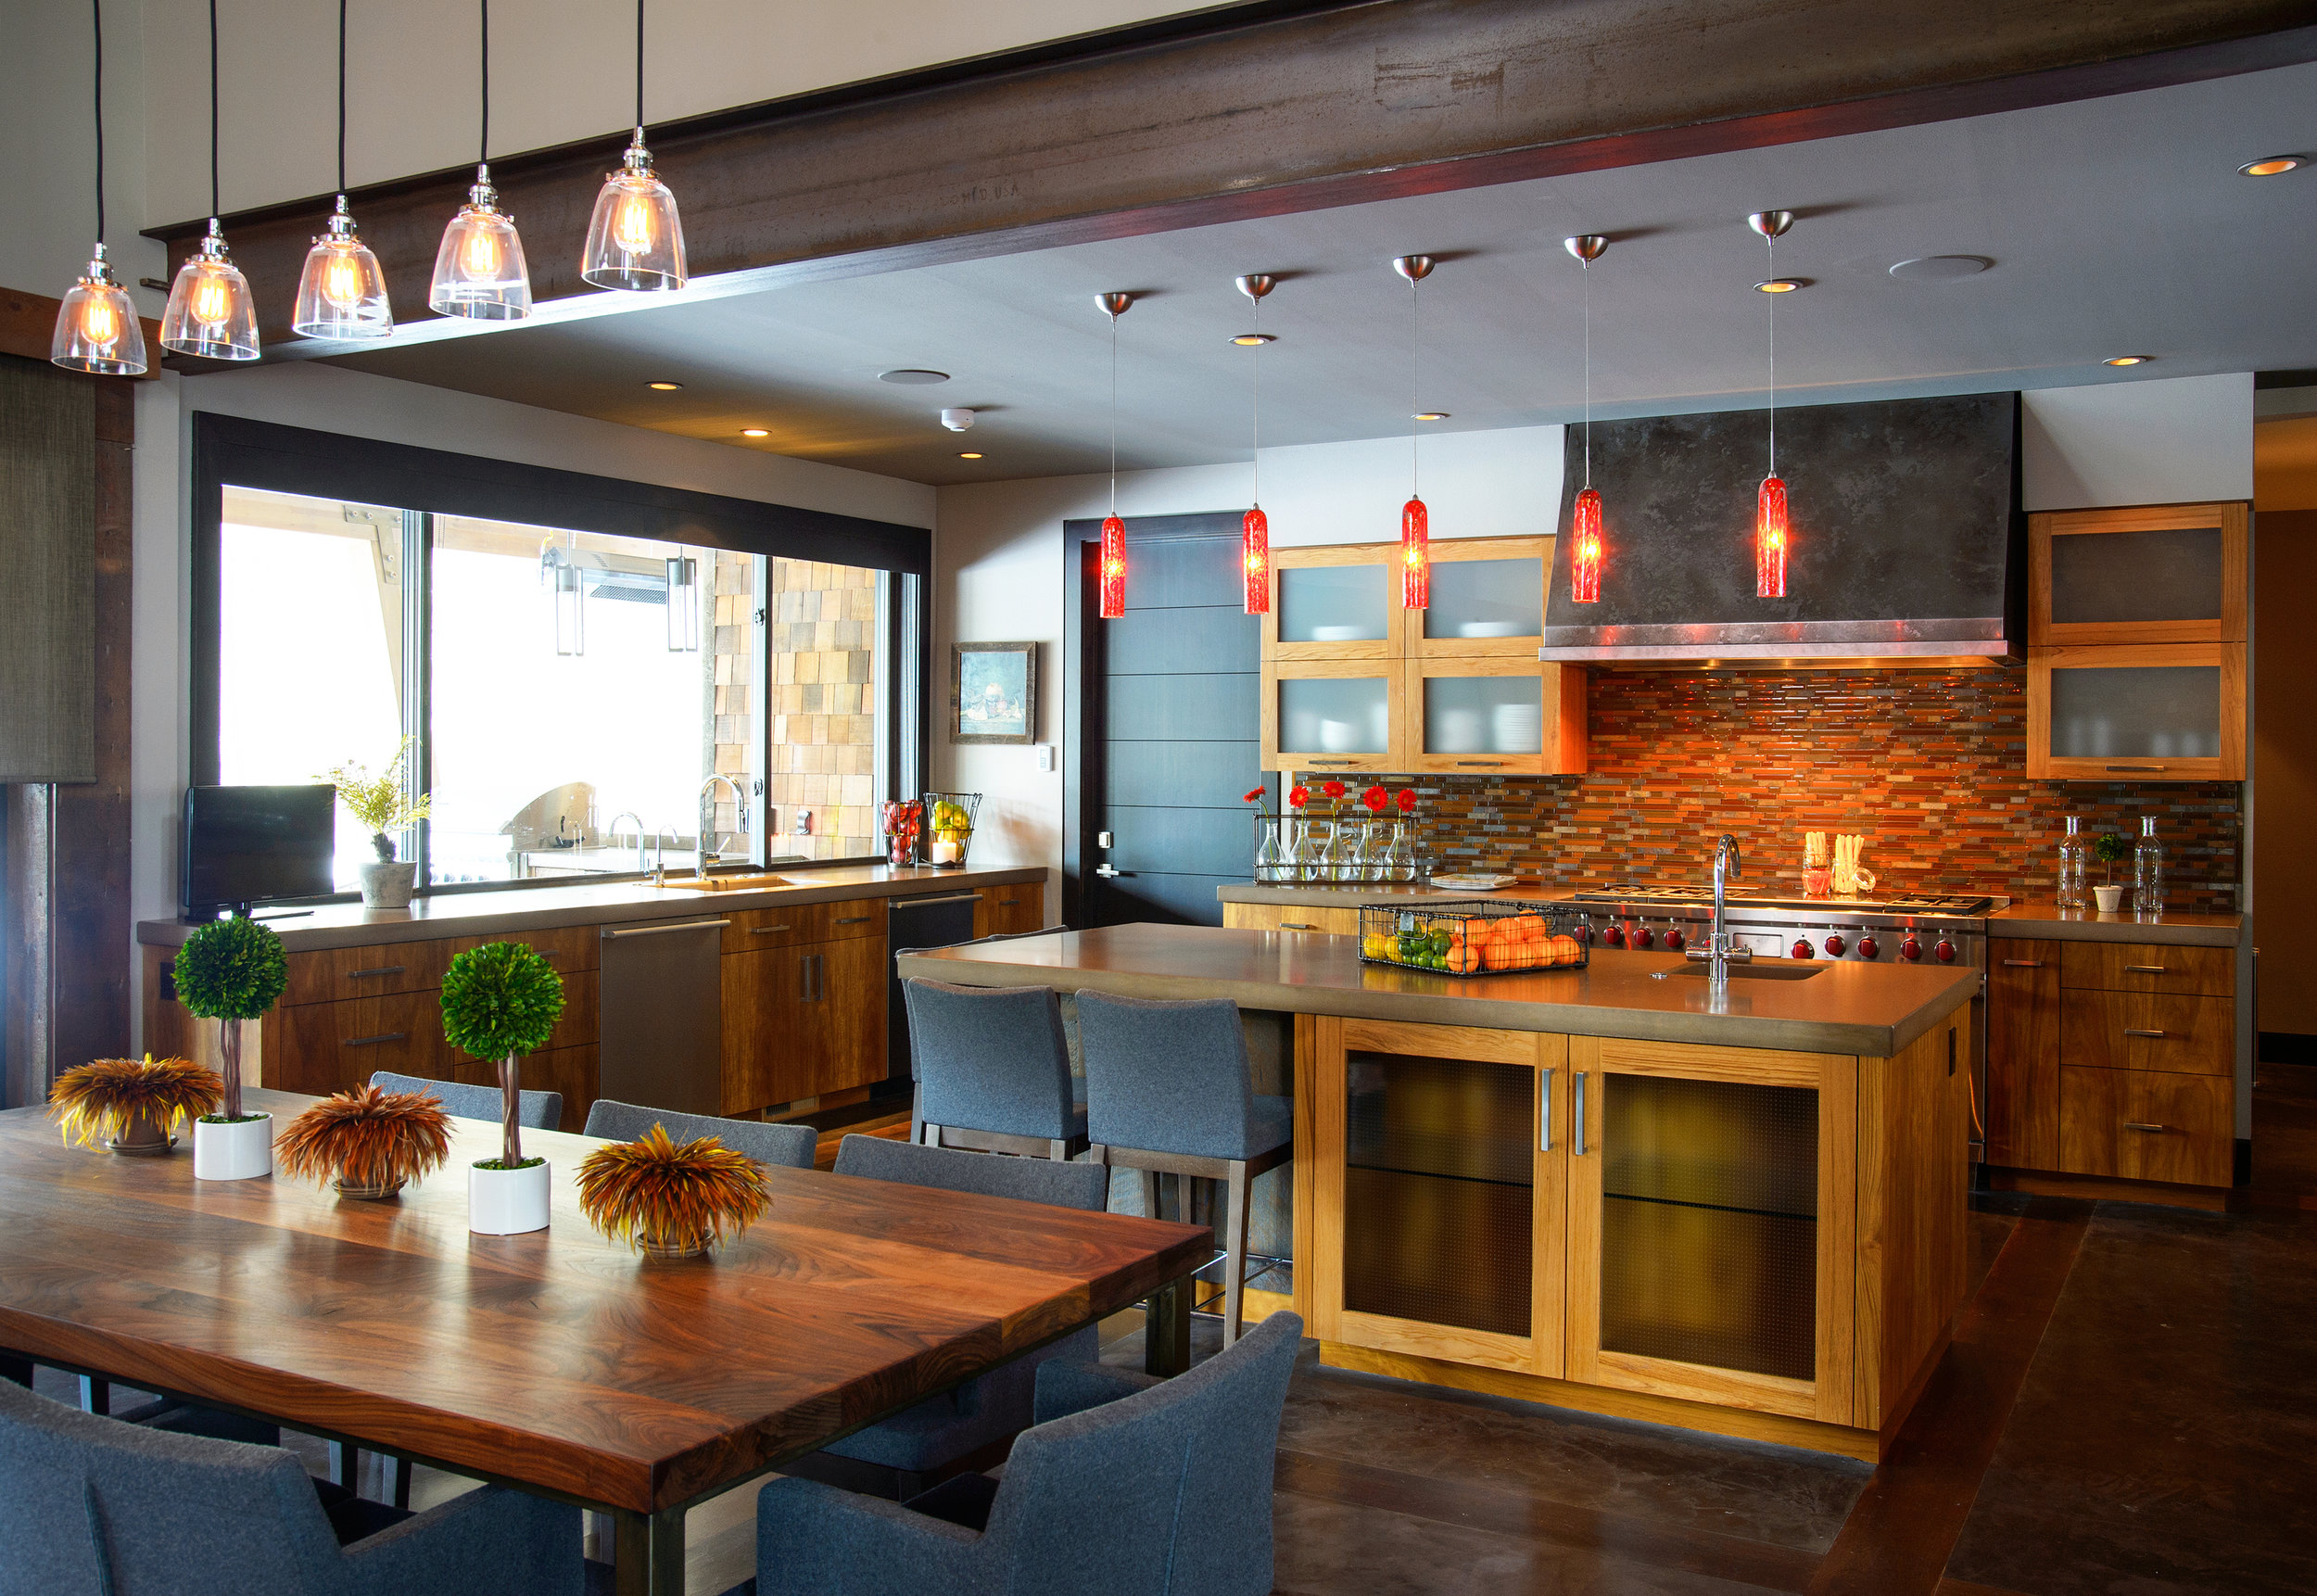 Kitchen from dining close up.jpg